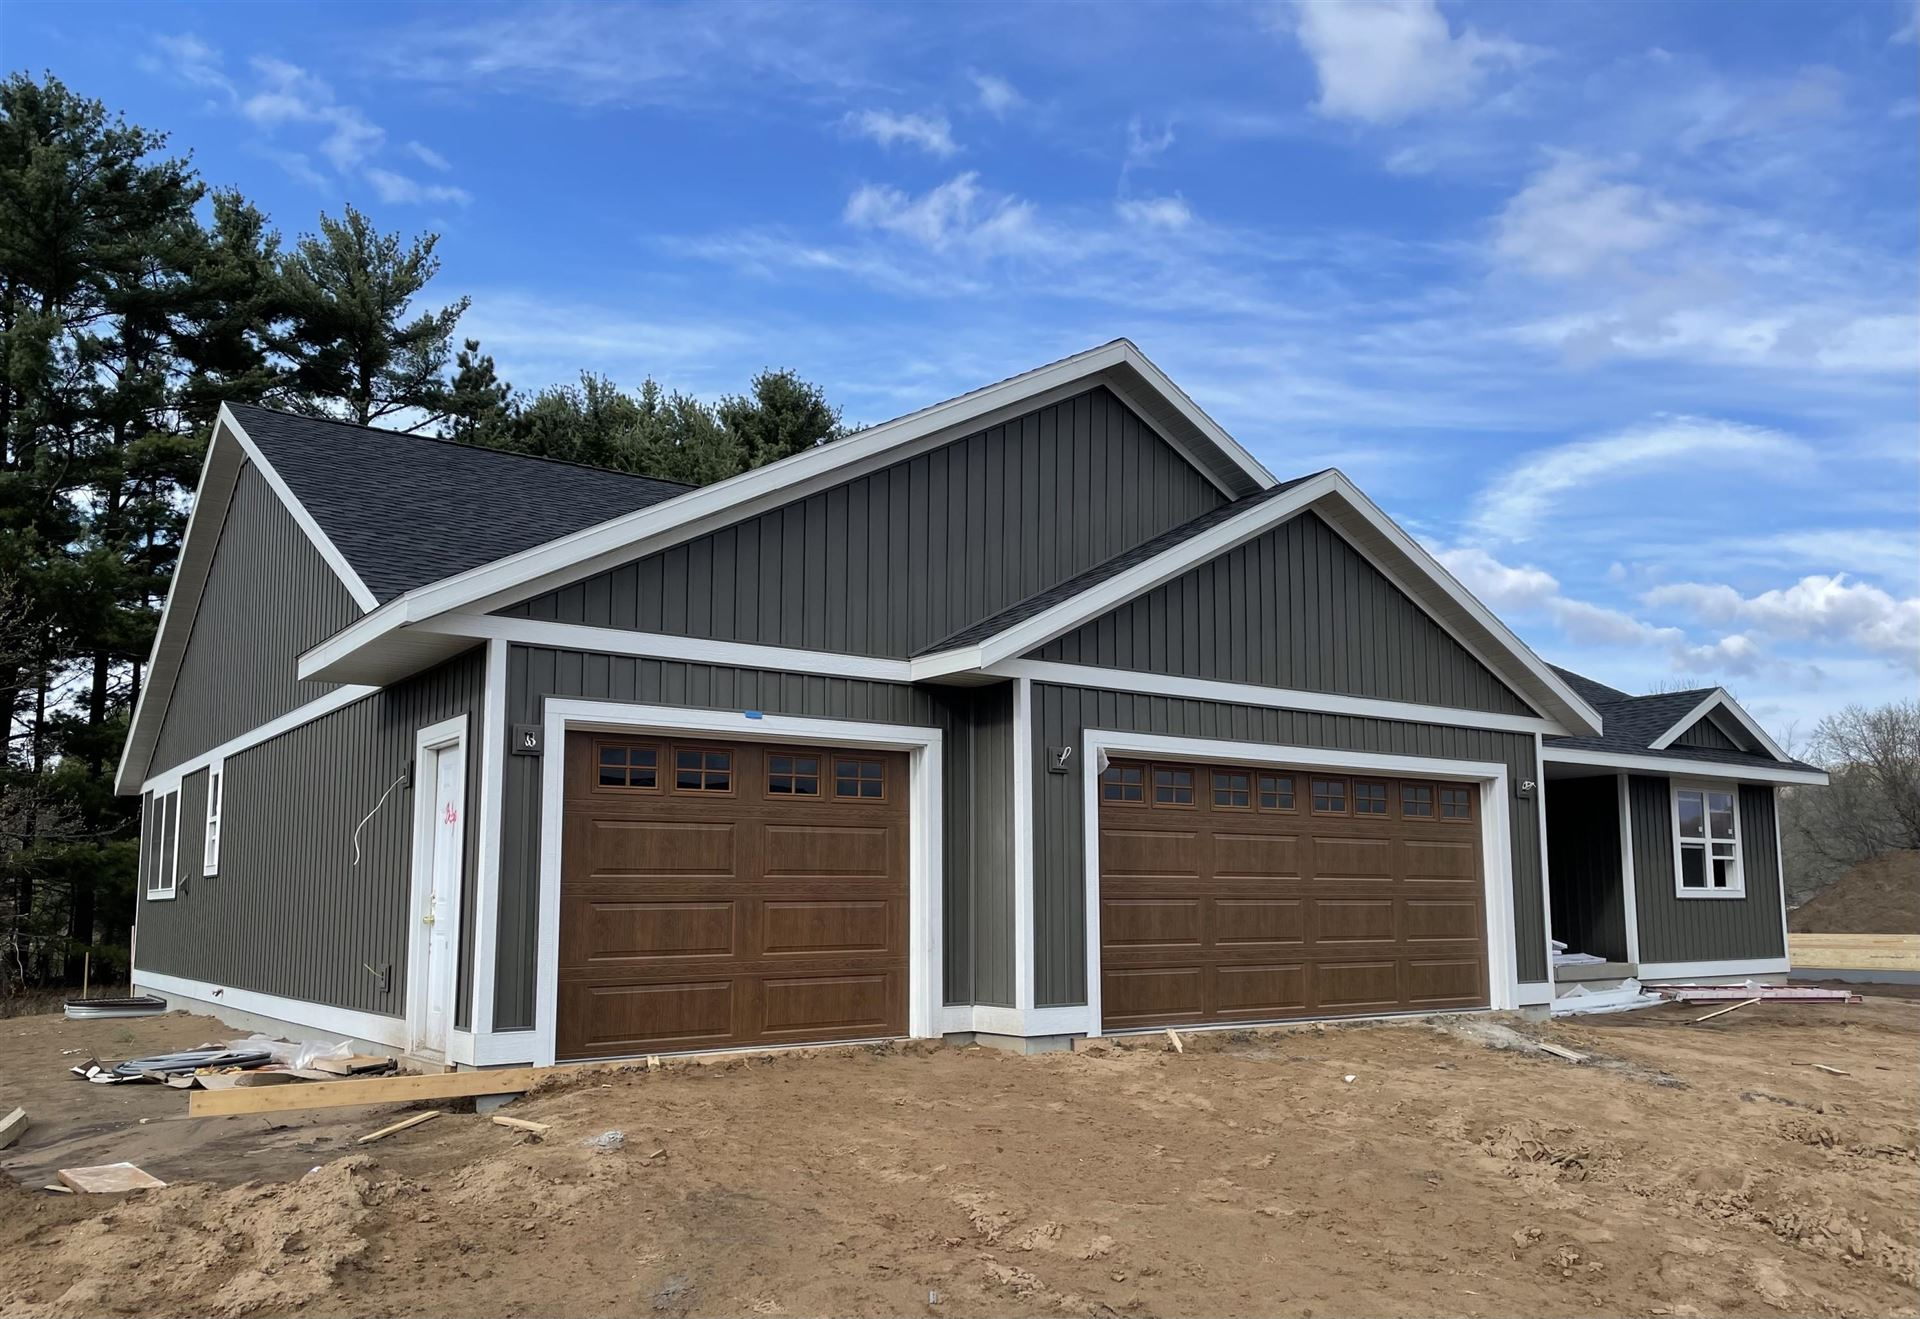 1942 McGilvray Way, Holmen, WI 54636 - MLS#: 1734507